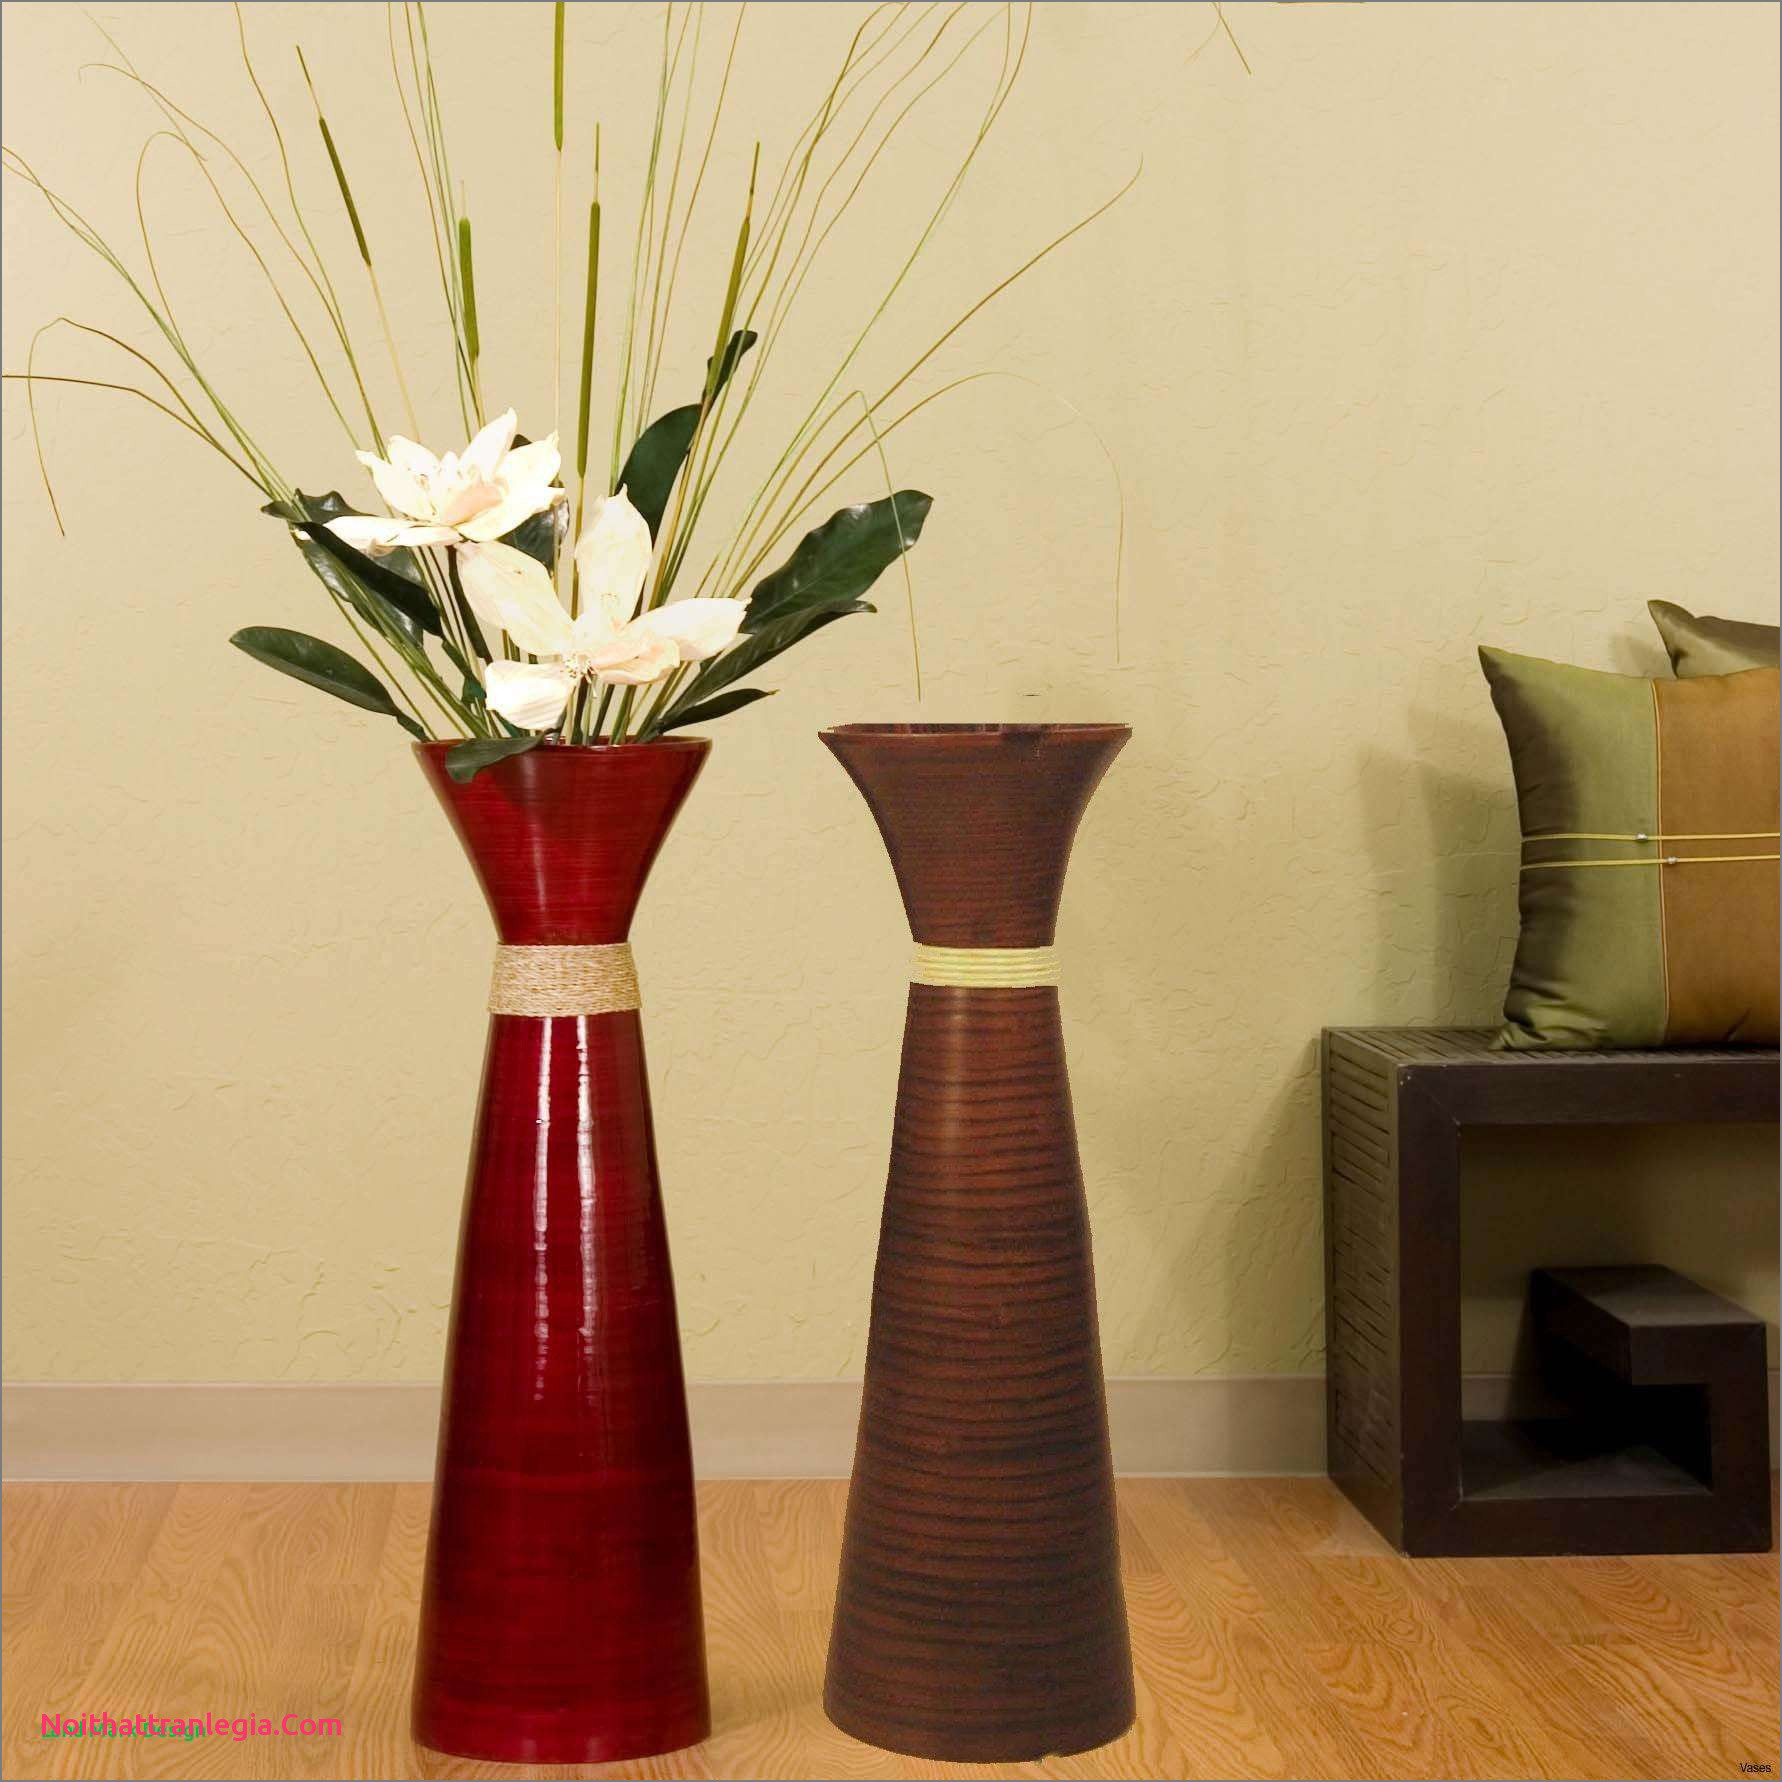 Cheap Wooden Vases Of 20 Large Floor Vase Nz Noithattranlegia Vases Design Regarding Full Size Of Living Room Wooden Vase Best Of Vases Flower Floor Vase with Flowersi Large